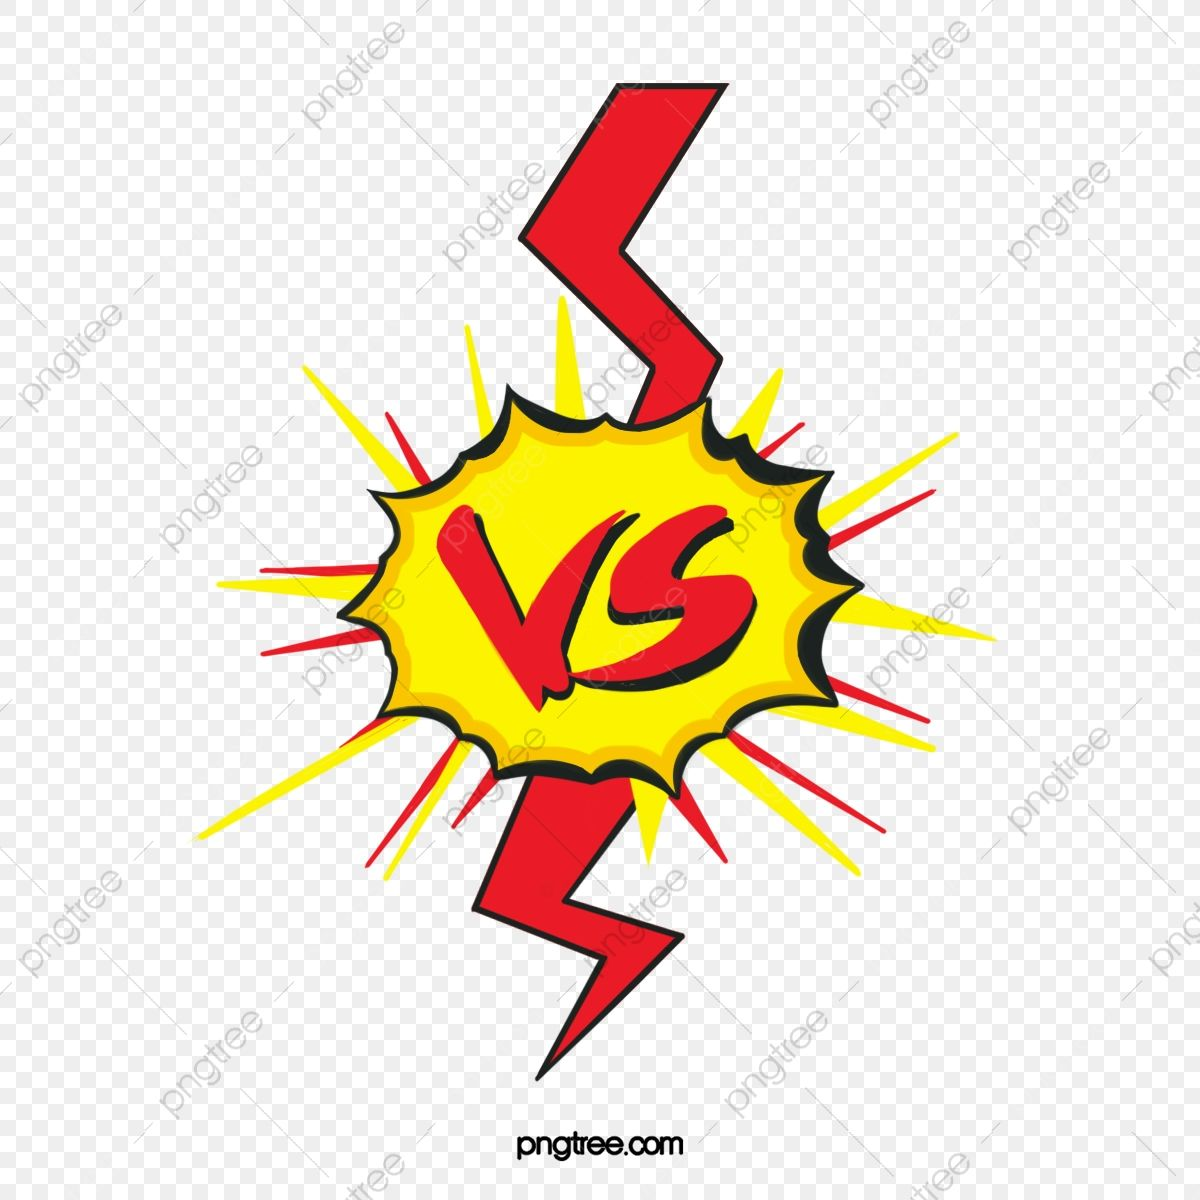 Vs Explosion Comic Competition Art Design Creative Png Transparent Clipart Image And Psd File For Free Download Clipart Images Clip Art Cartoon Illustration